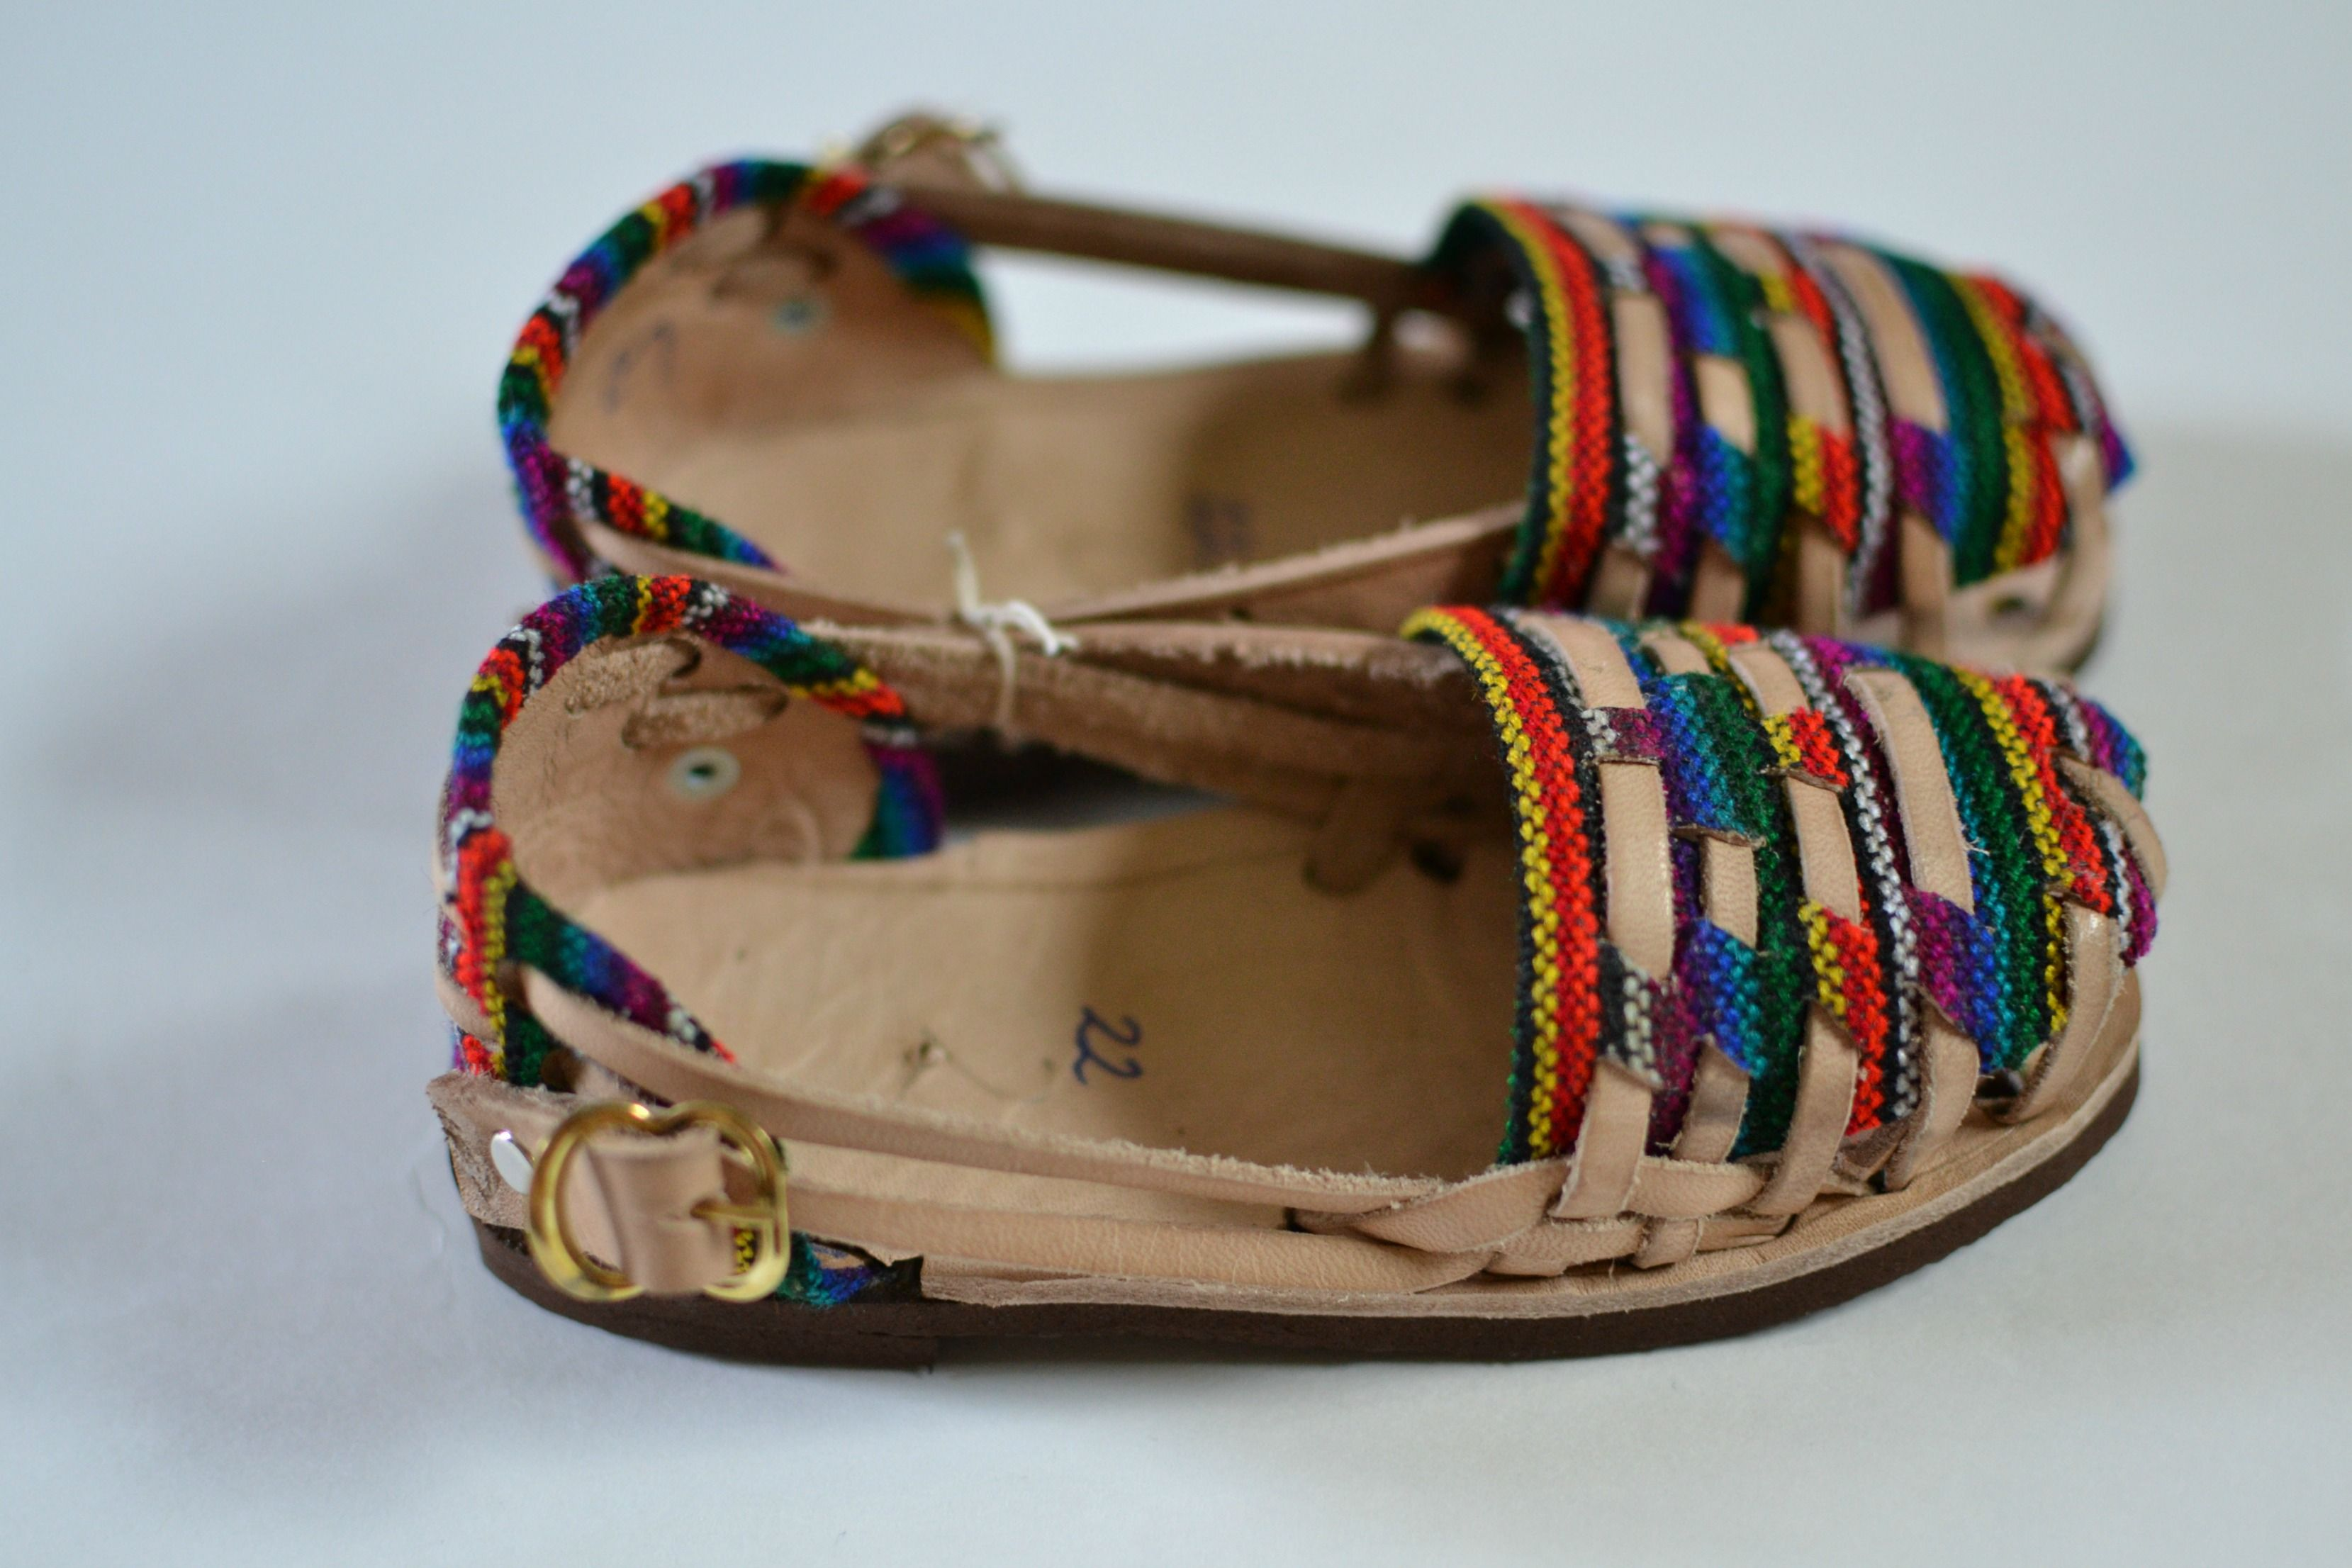 a381d30edae4 Authentic caites huaraches handcrafted by artisans in Guatemala.